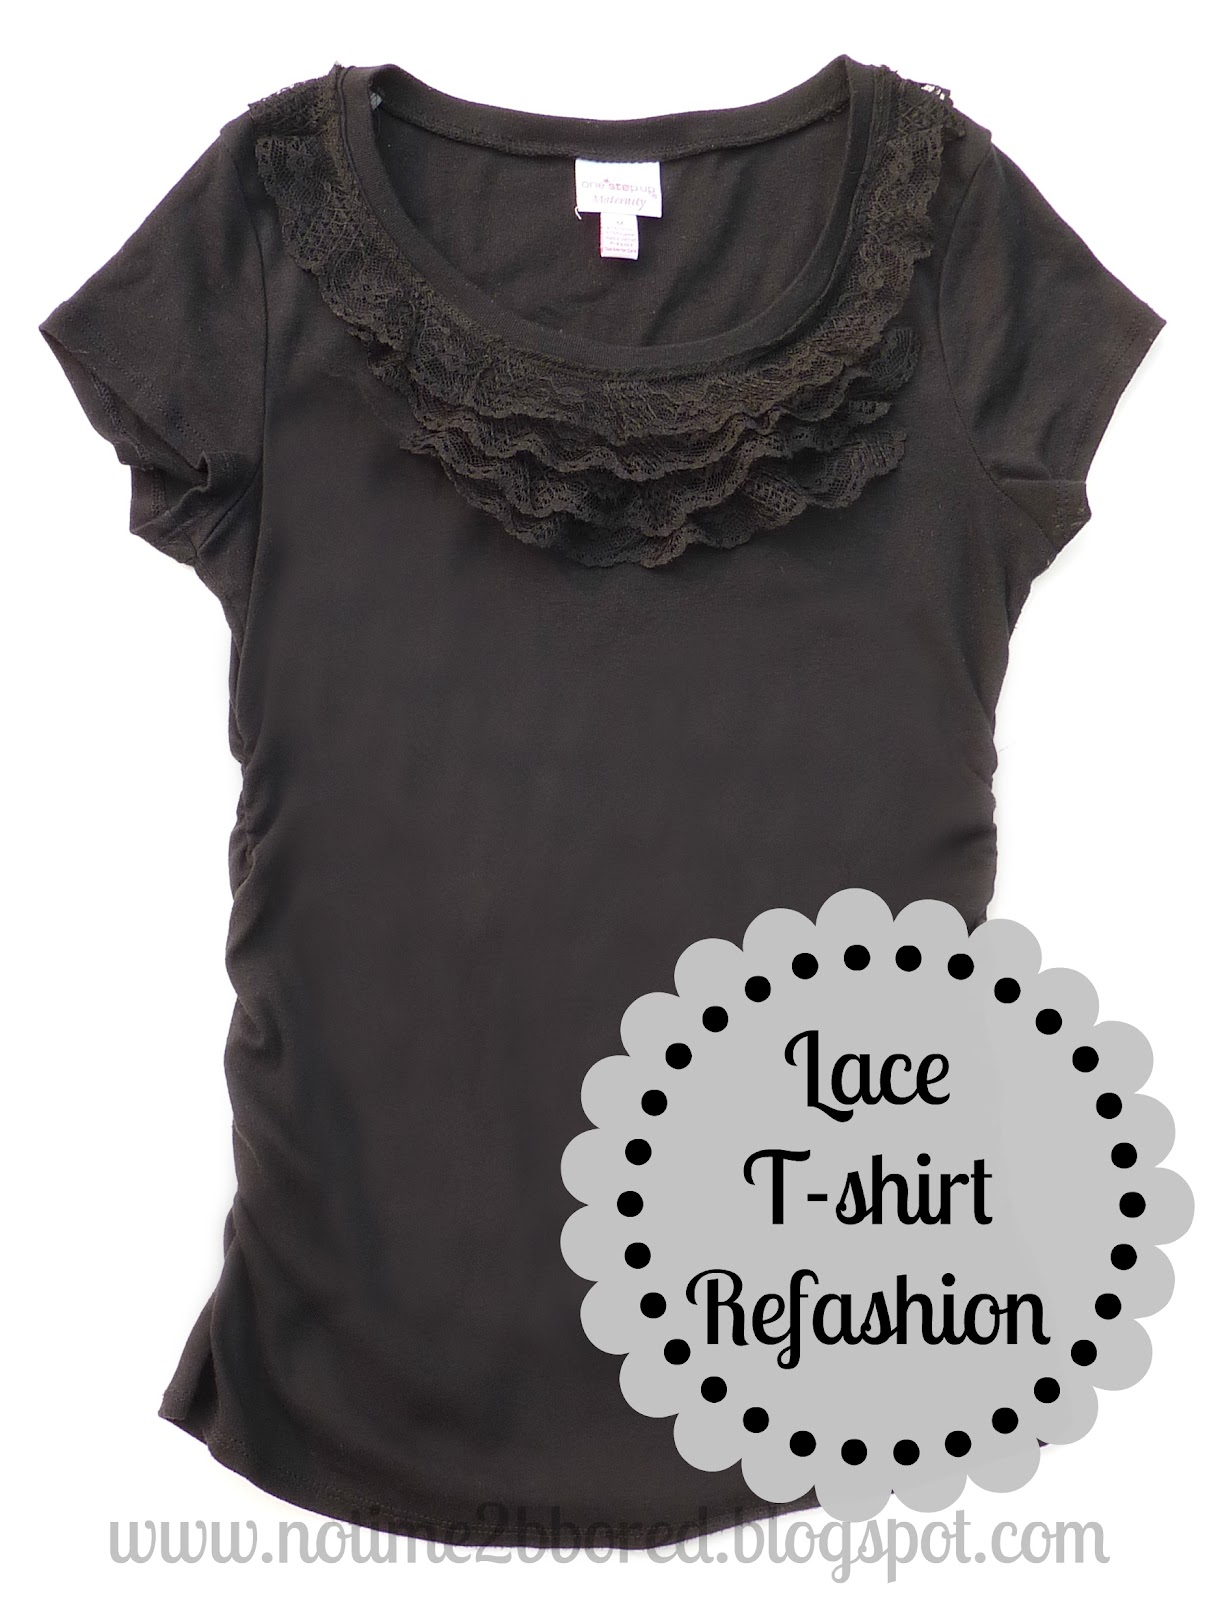 No time to be bored easy lace ruffle t shirt refashion for Very cheap t shirts